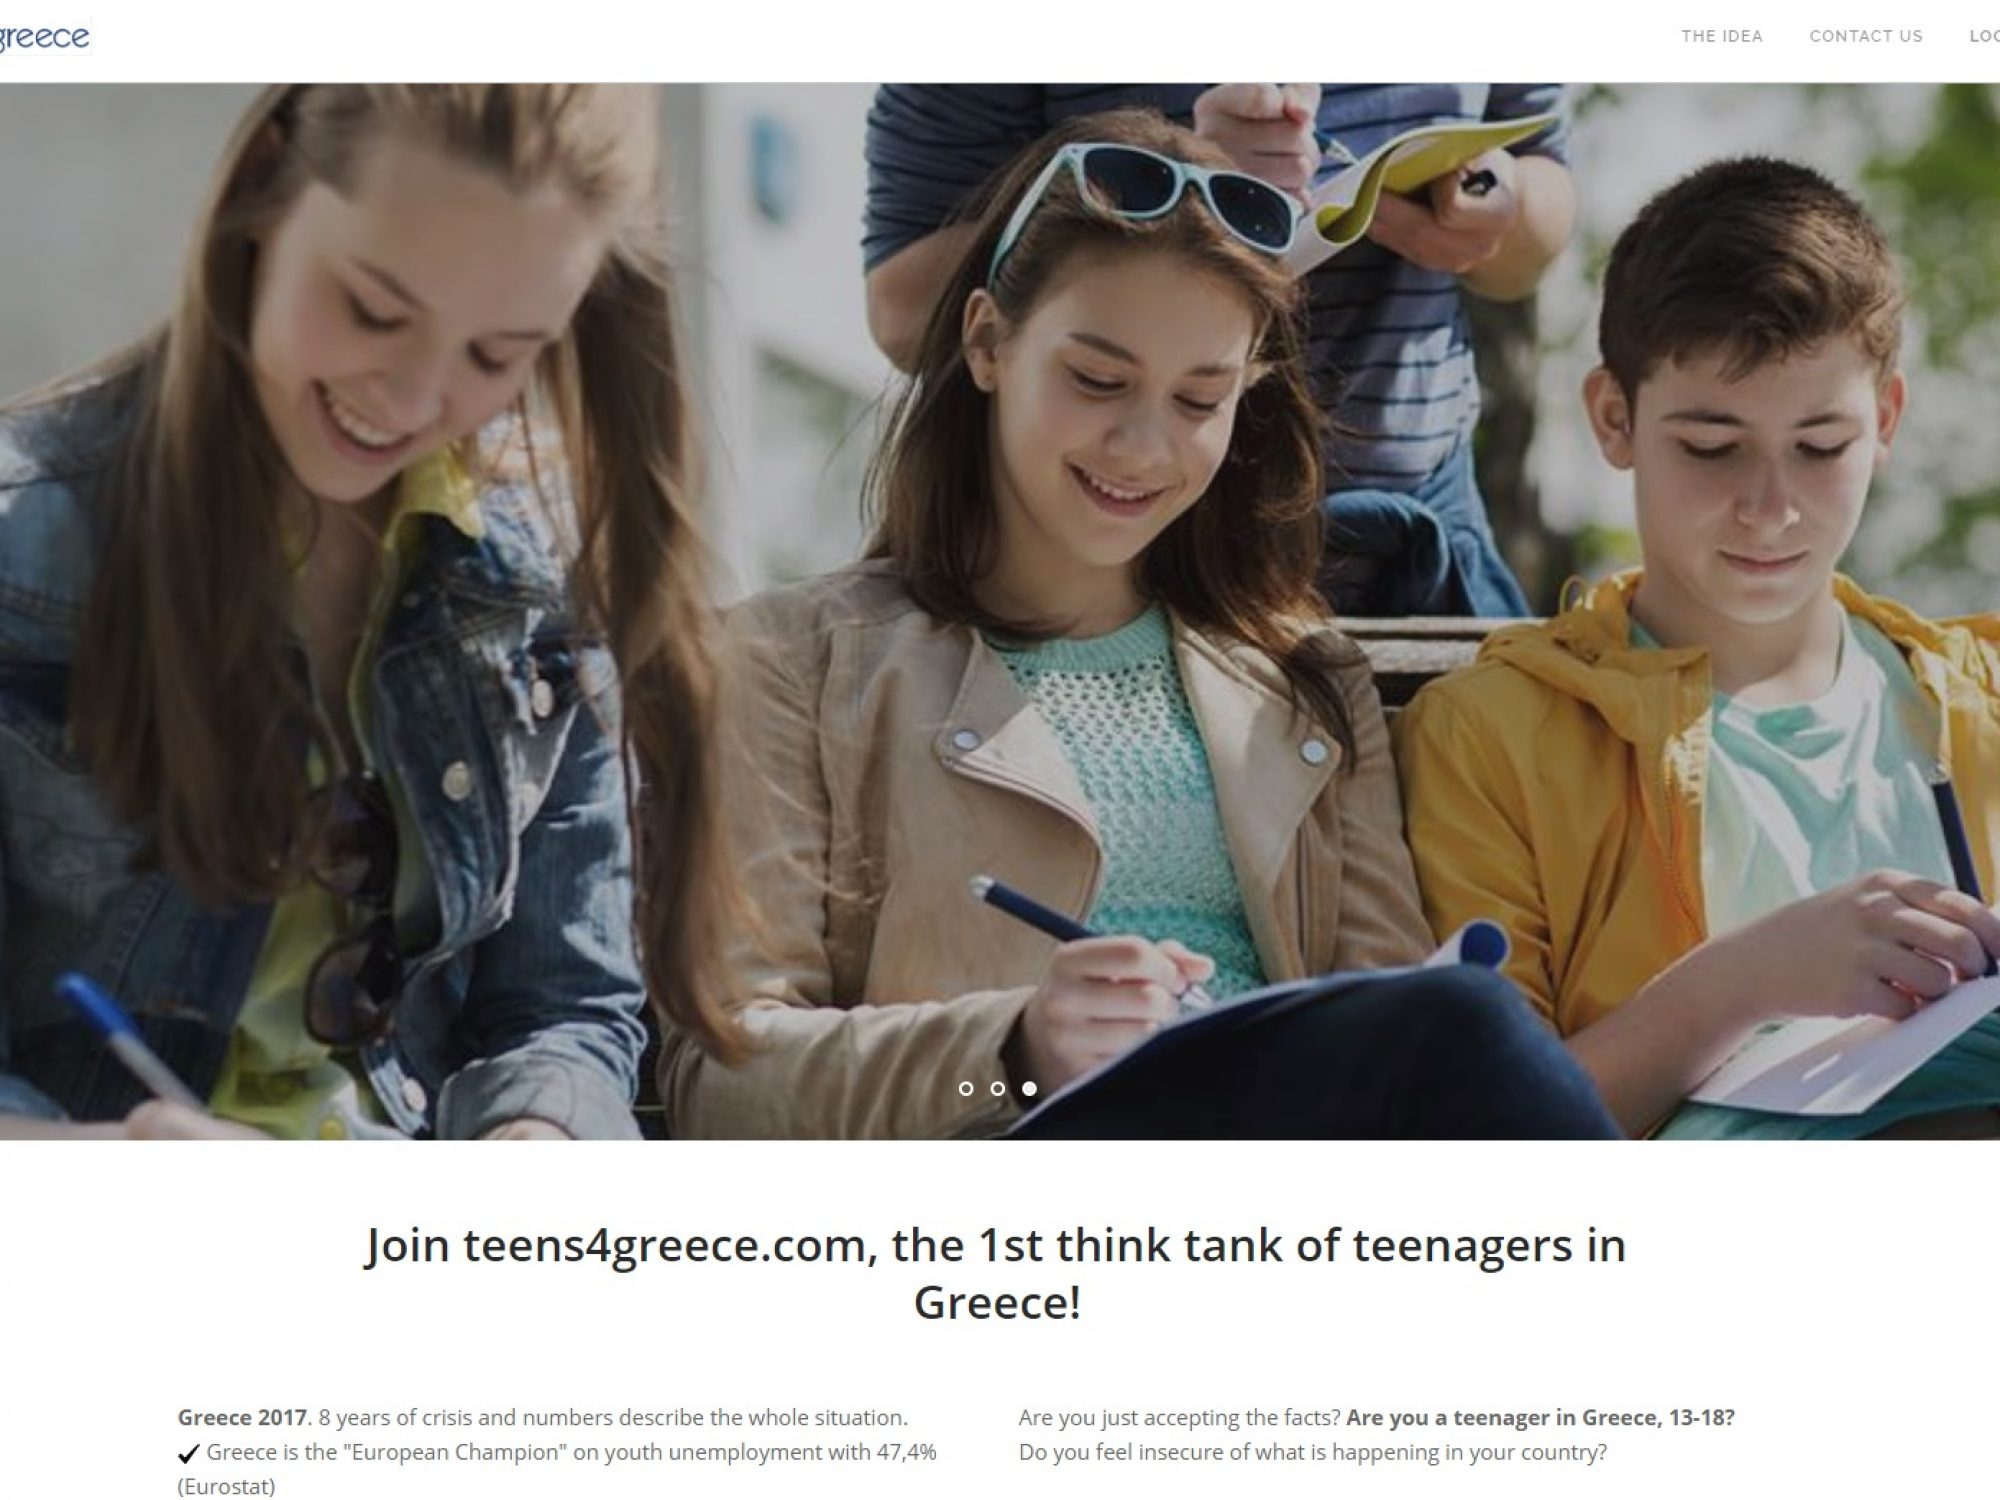 teens4greece